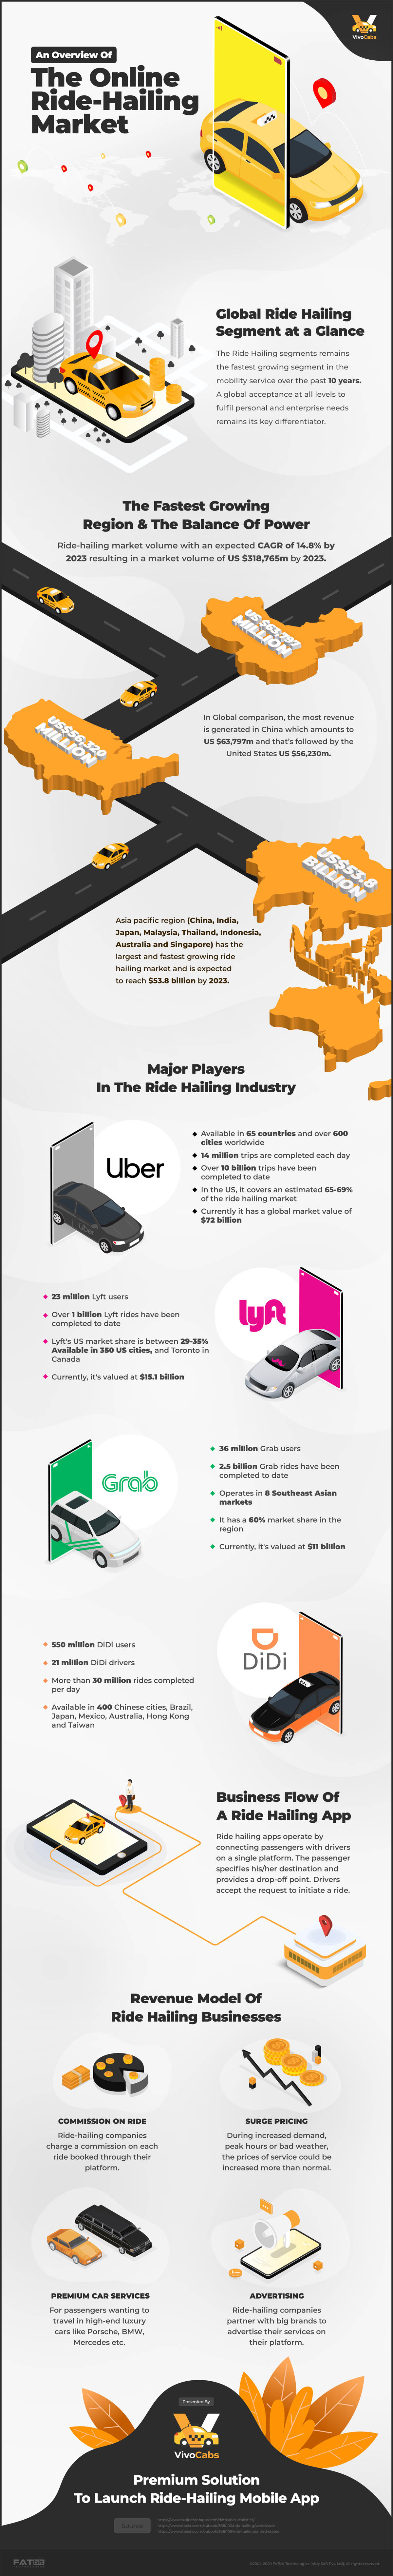 Ride Hailing Market Trends and Business Opportunities